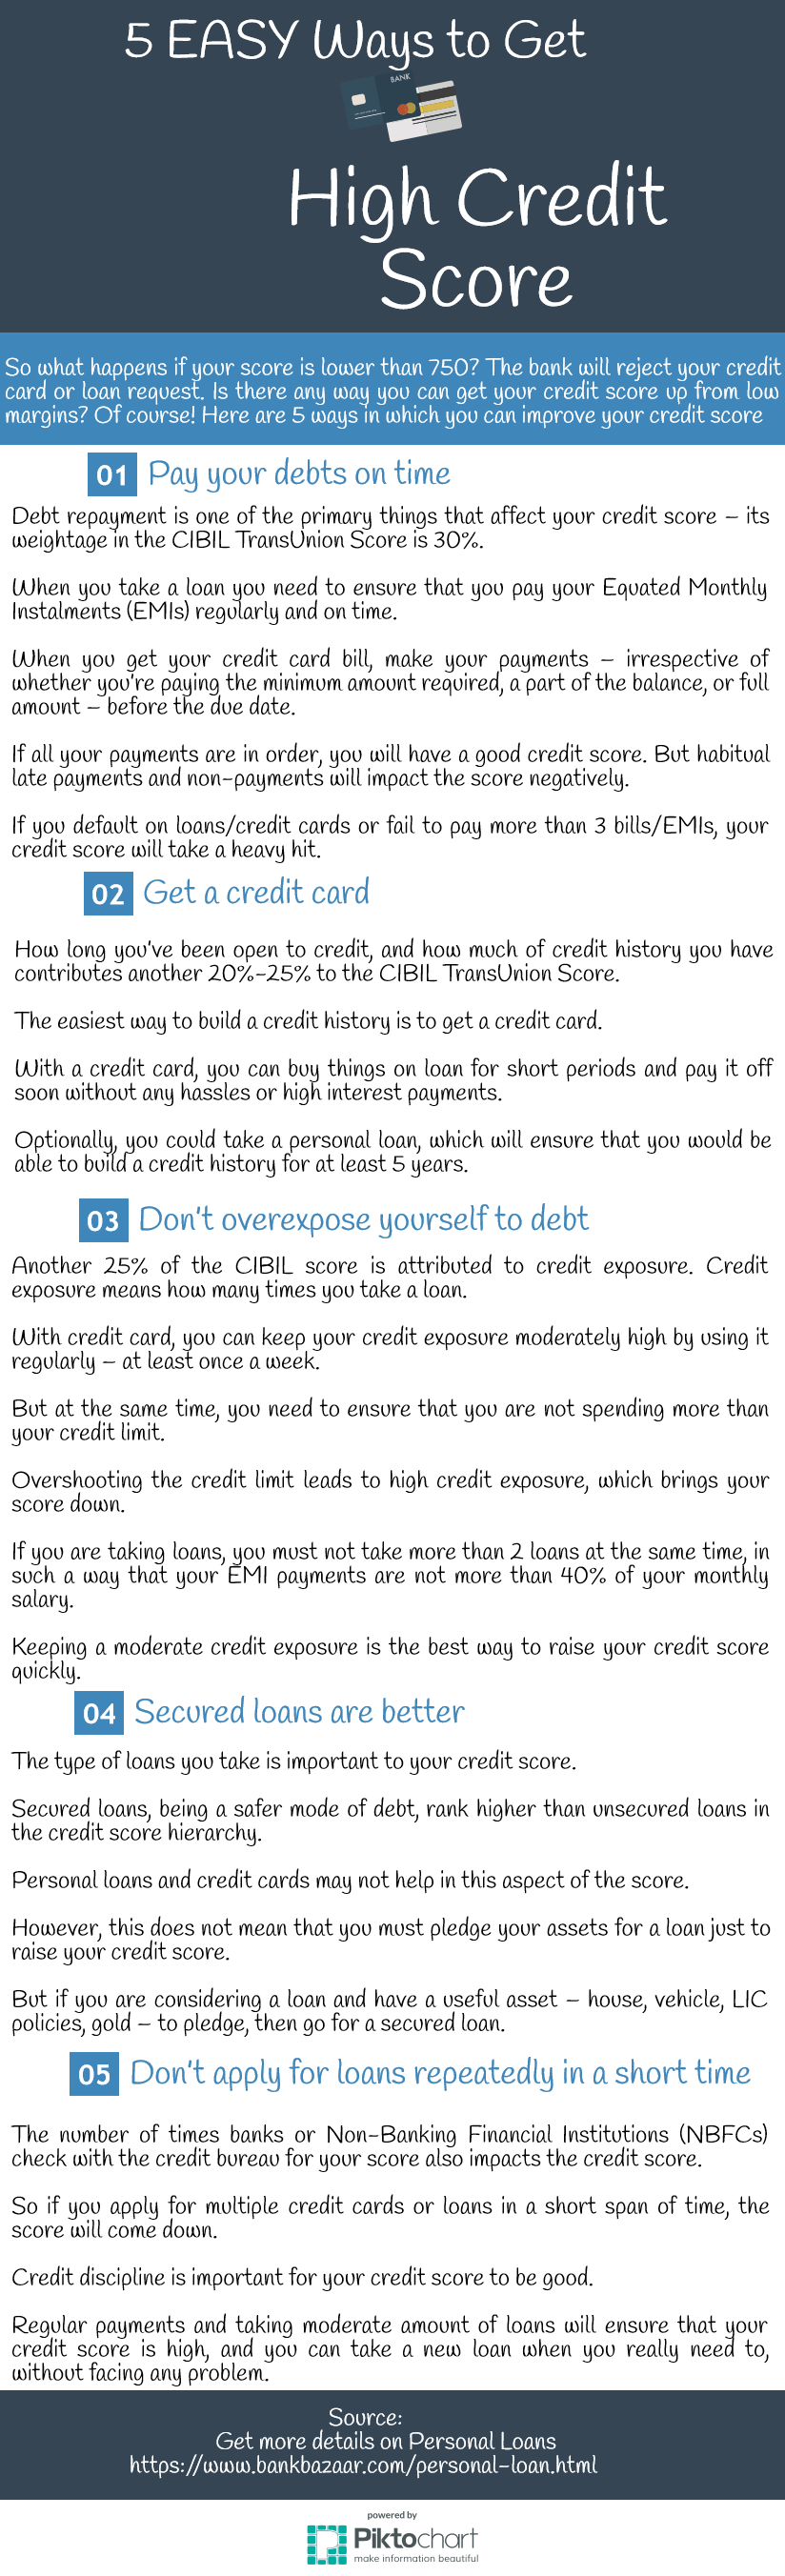 5 Easy Ways To Get High Credit Score Credit Score Financial News Financial Information